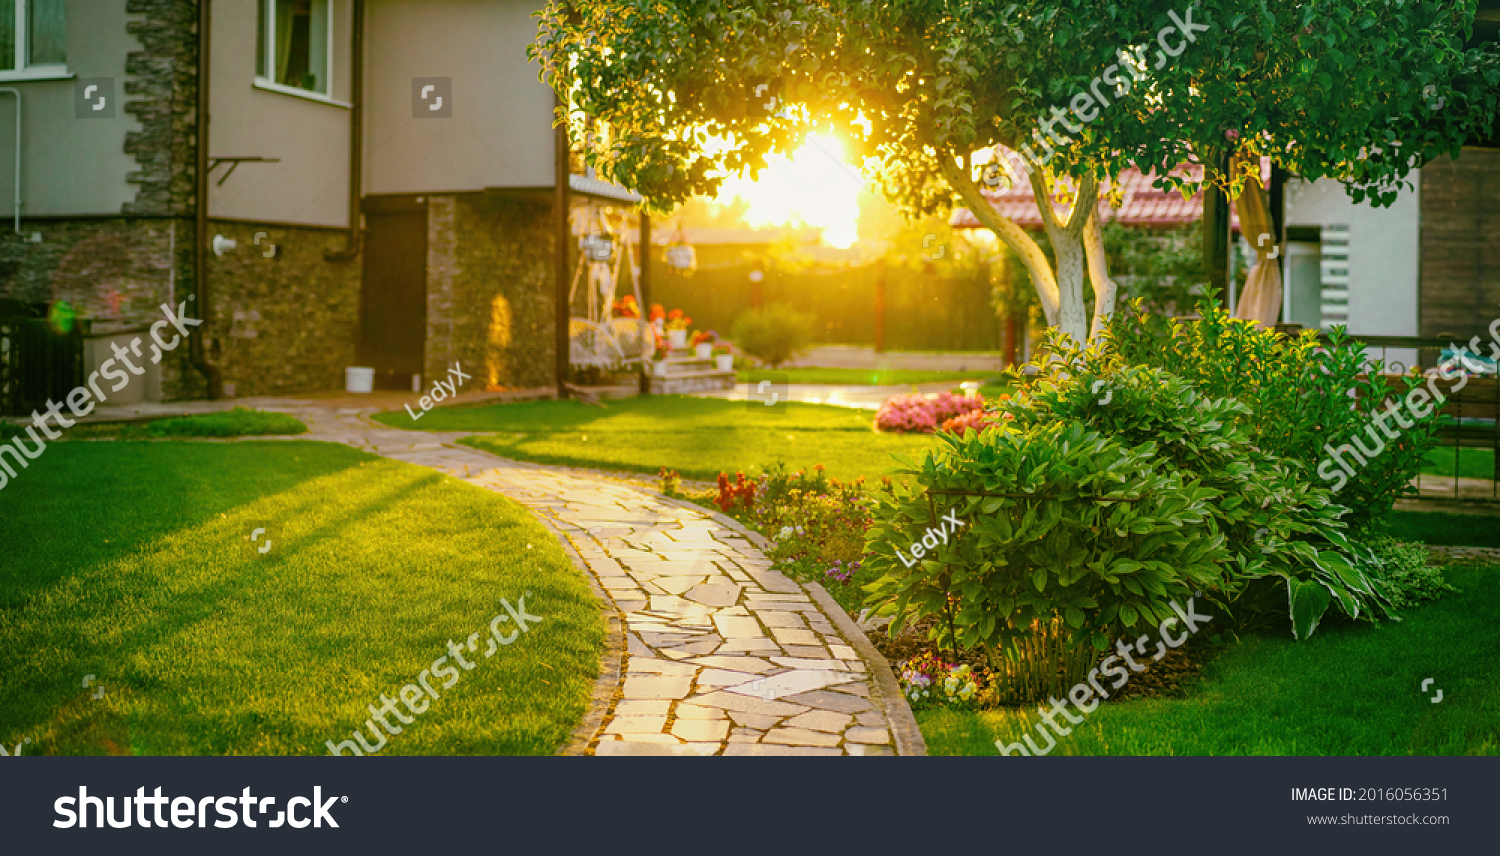 Beautiful manicured lawn and flowerbed with deciduous shrubs on private plot and track to house against backlit bright warm sunset evening light on background. Soft focusing in foreground. #2016056351